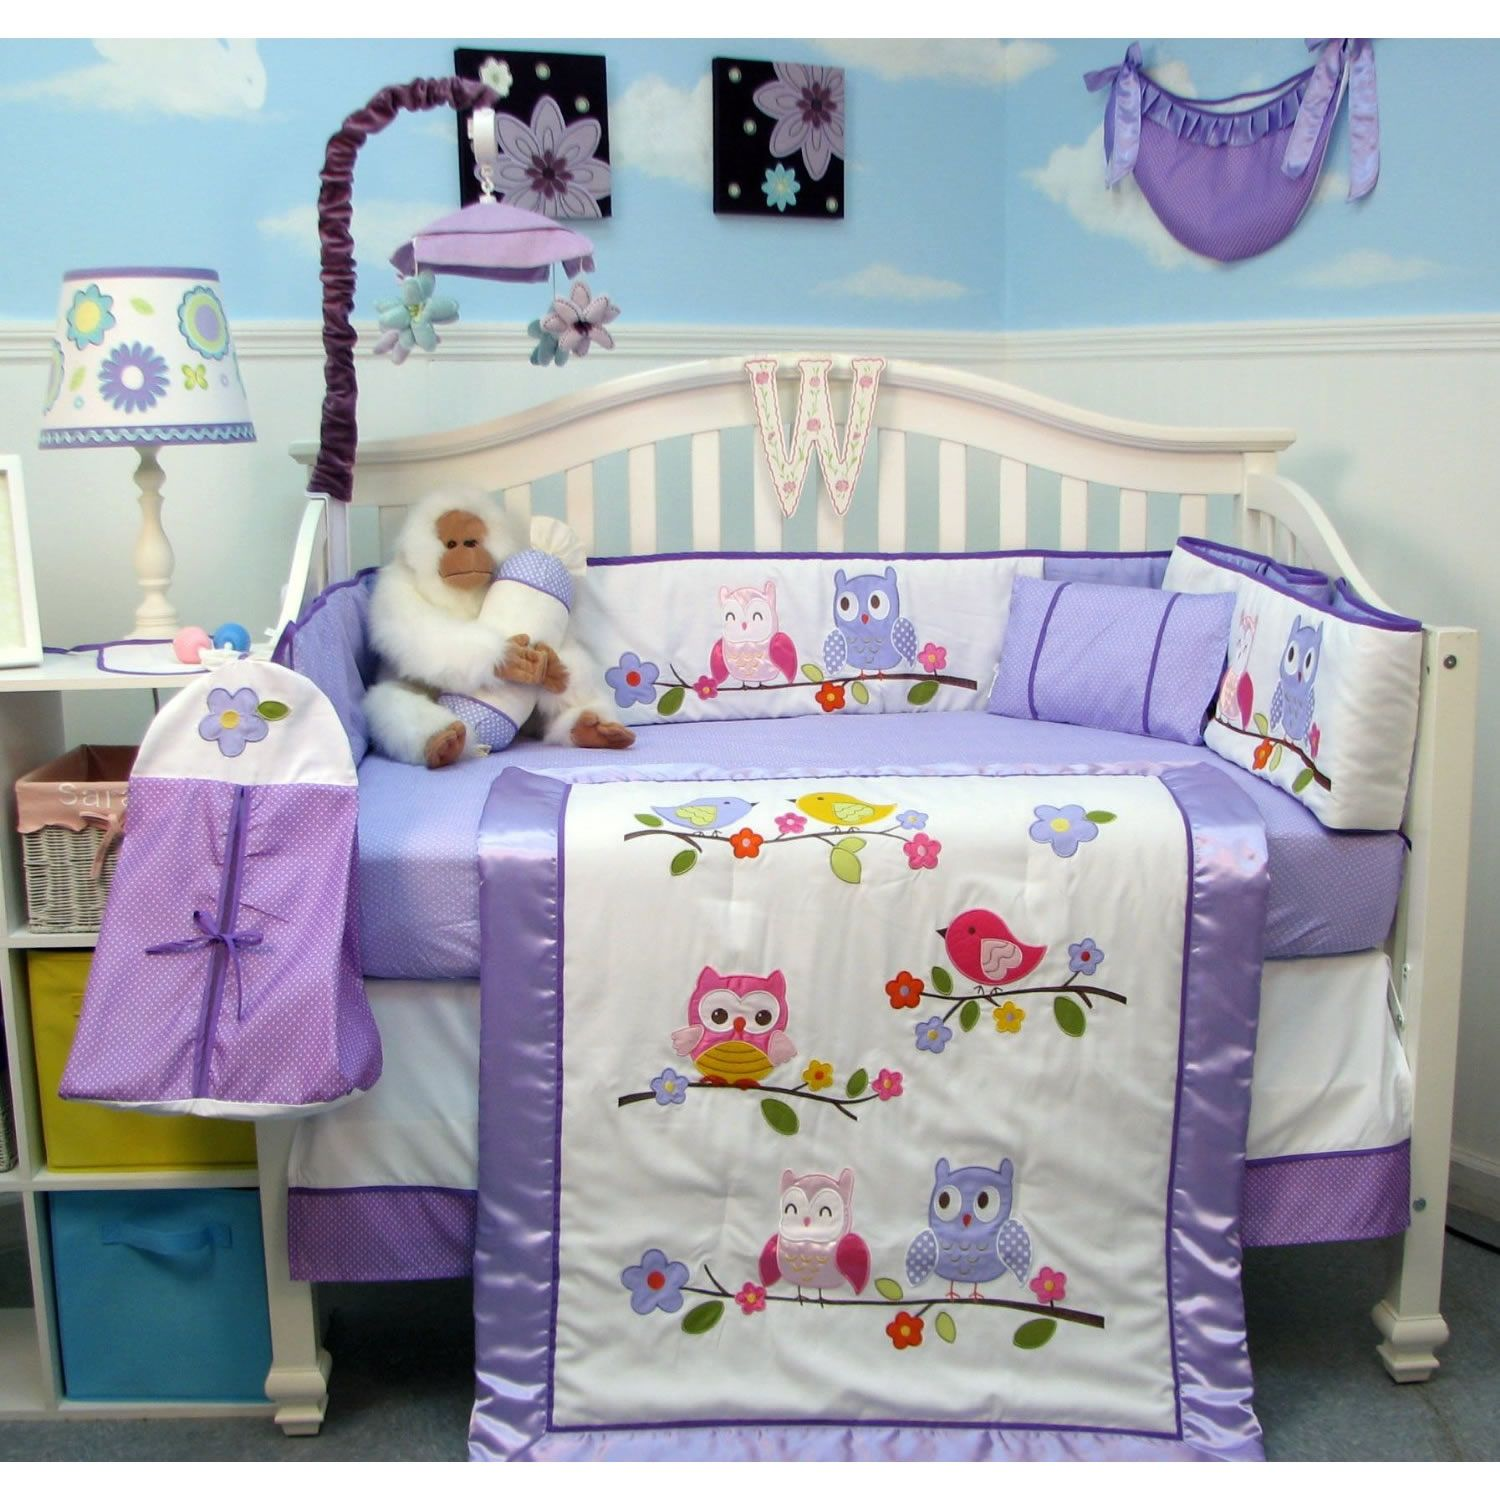 Owls Lavender Party Girls Baby Crib Nursery Bedding Set 14